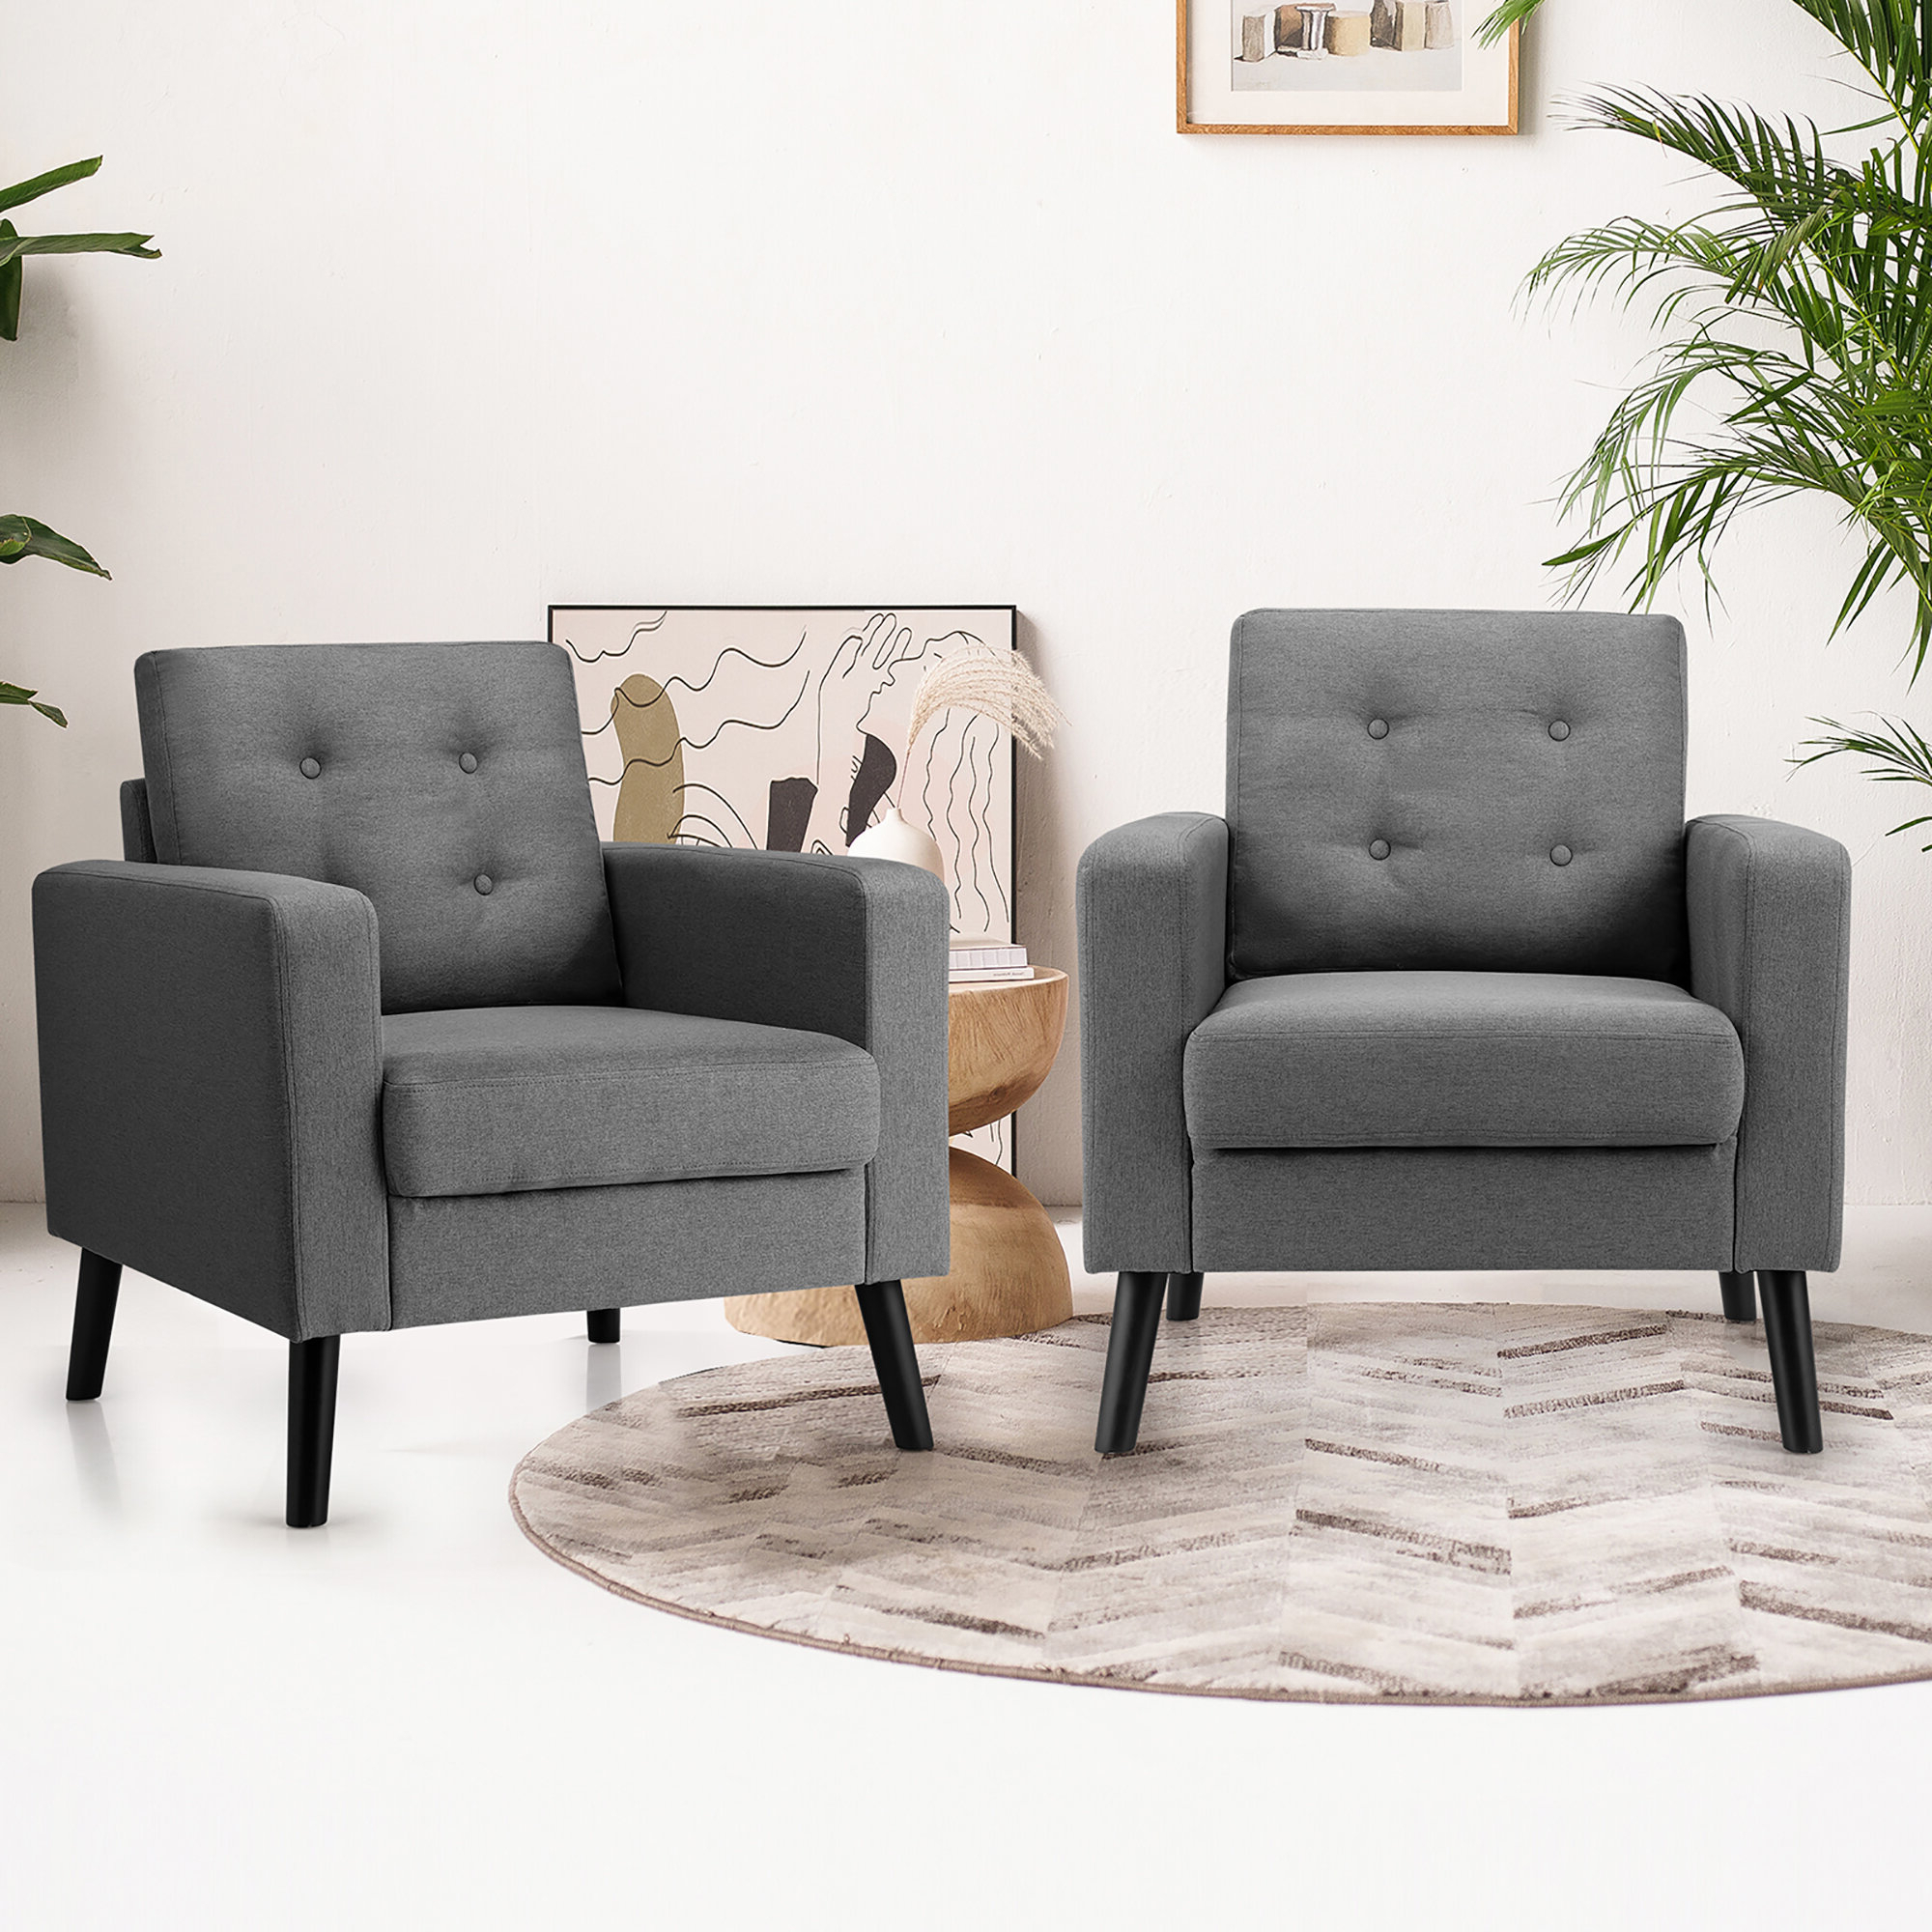 Widely Used Armory Fabric Armchairs With Arm Modern & Contemporary Accent Chairs You'll Love In (View 7 of 20)